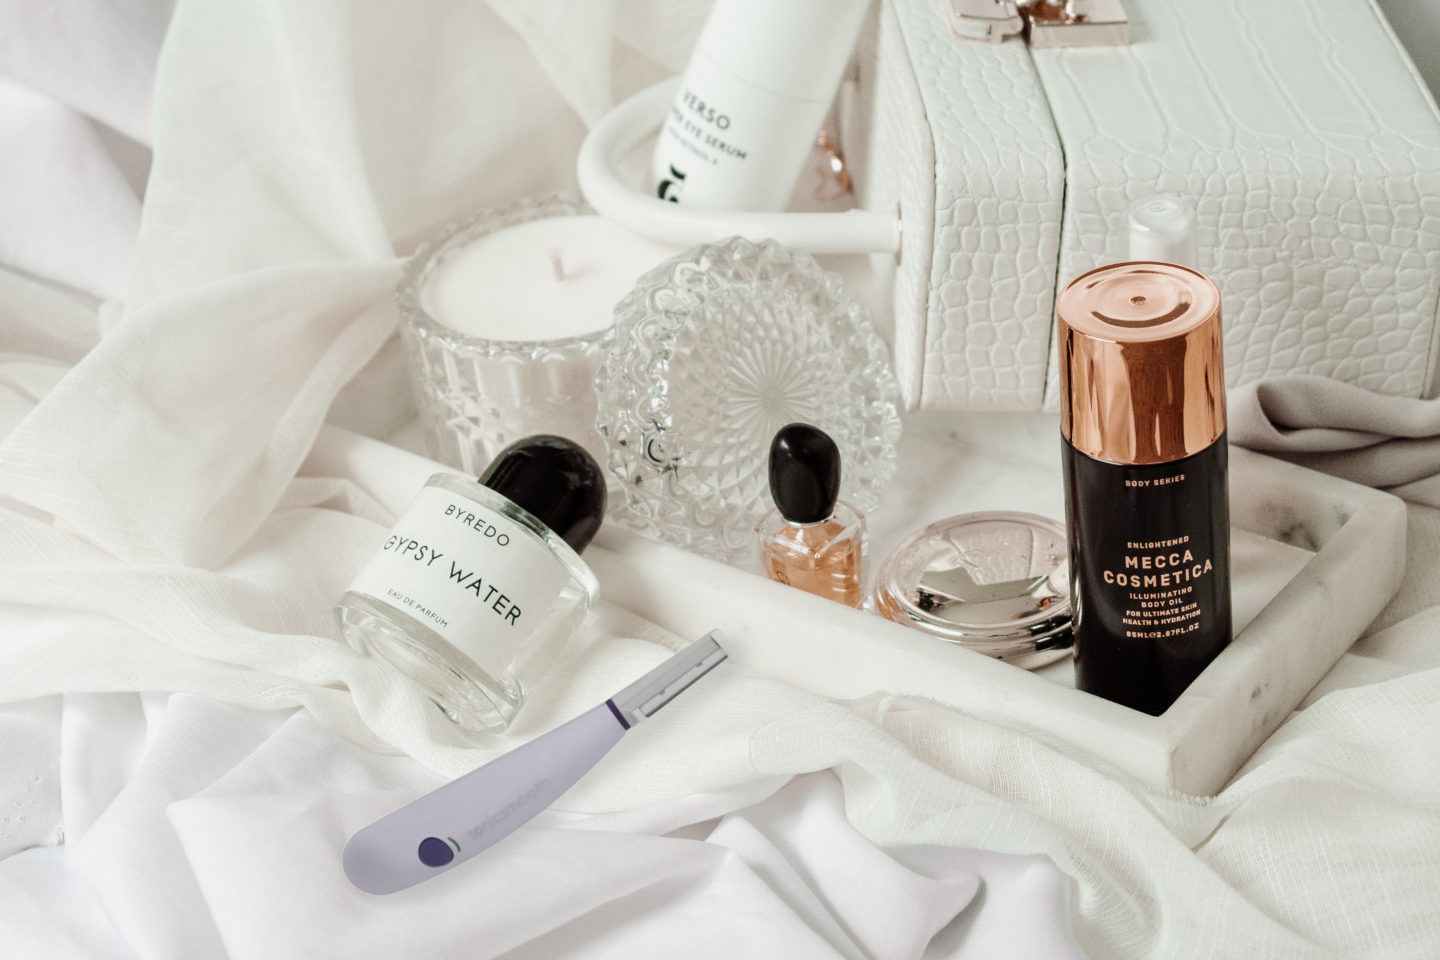 How to dermaplane at home, by beauty blogger What The Fab